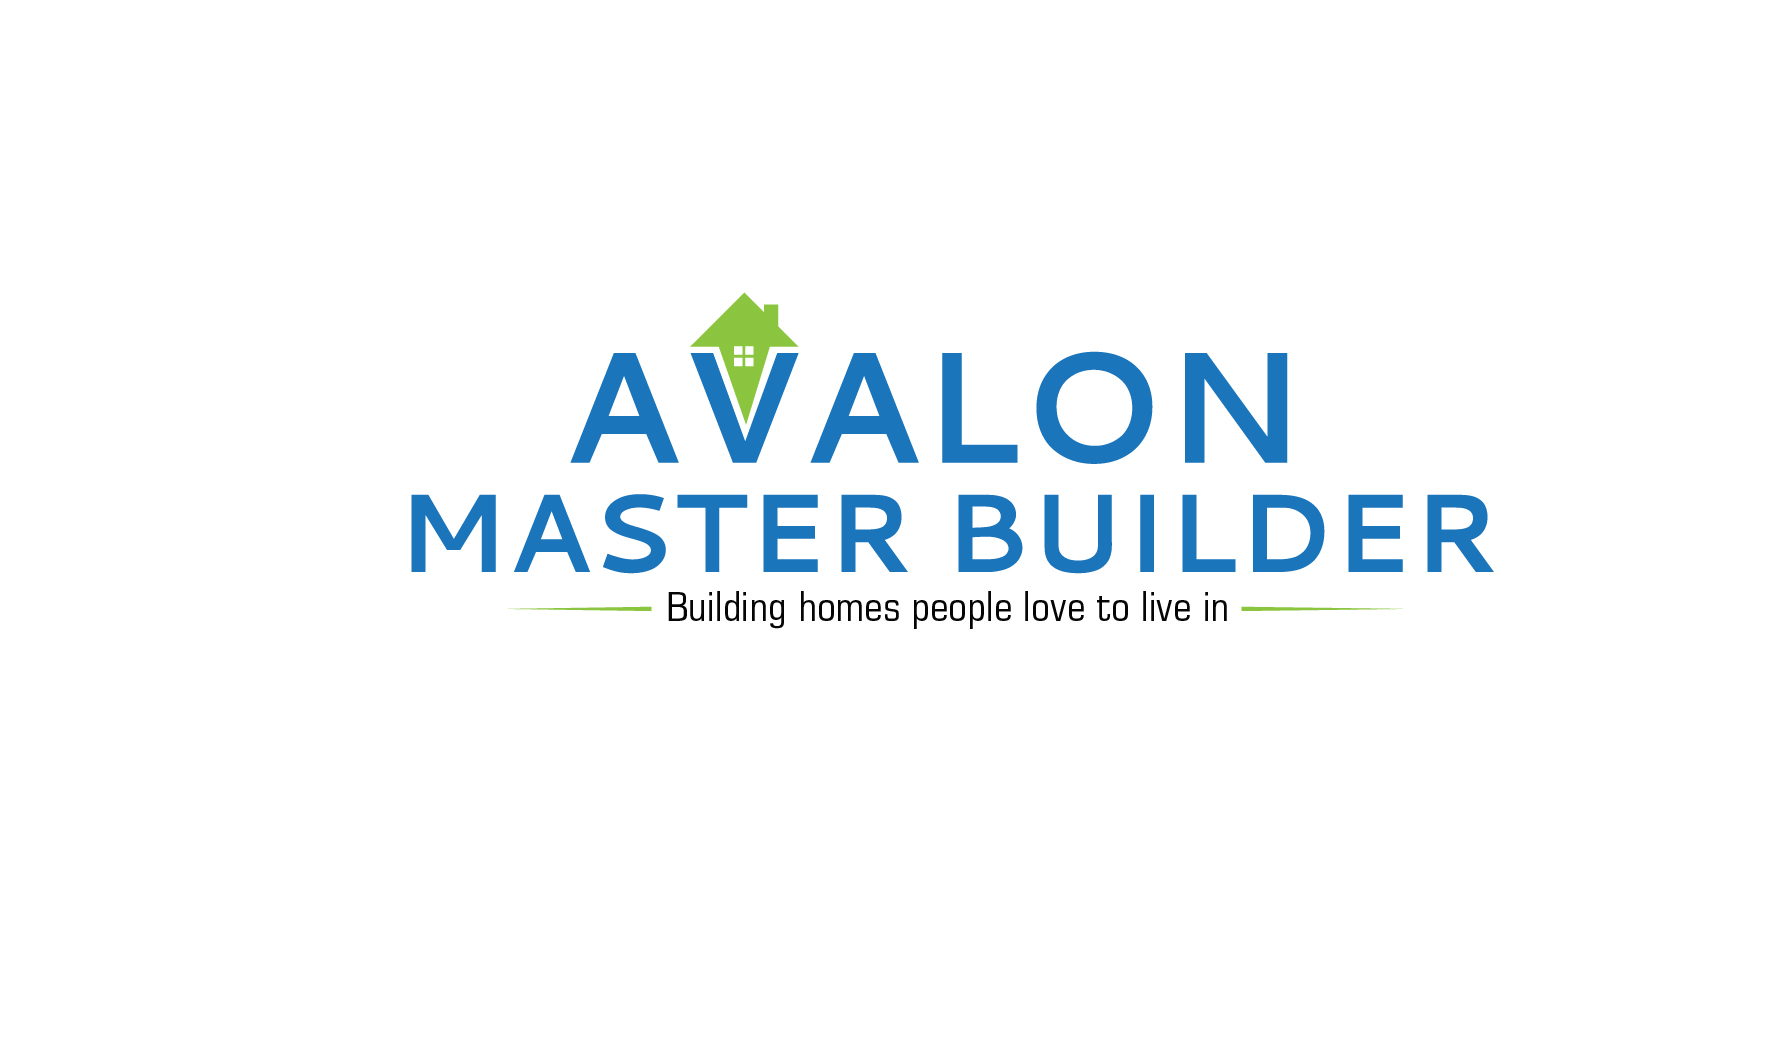 Logo Design by 3draw - Entry No. 16 in the Logo Design Contest Avalon Master Builder Logo Design.